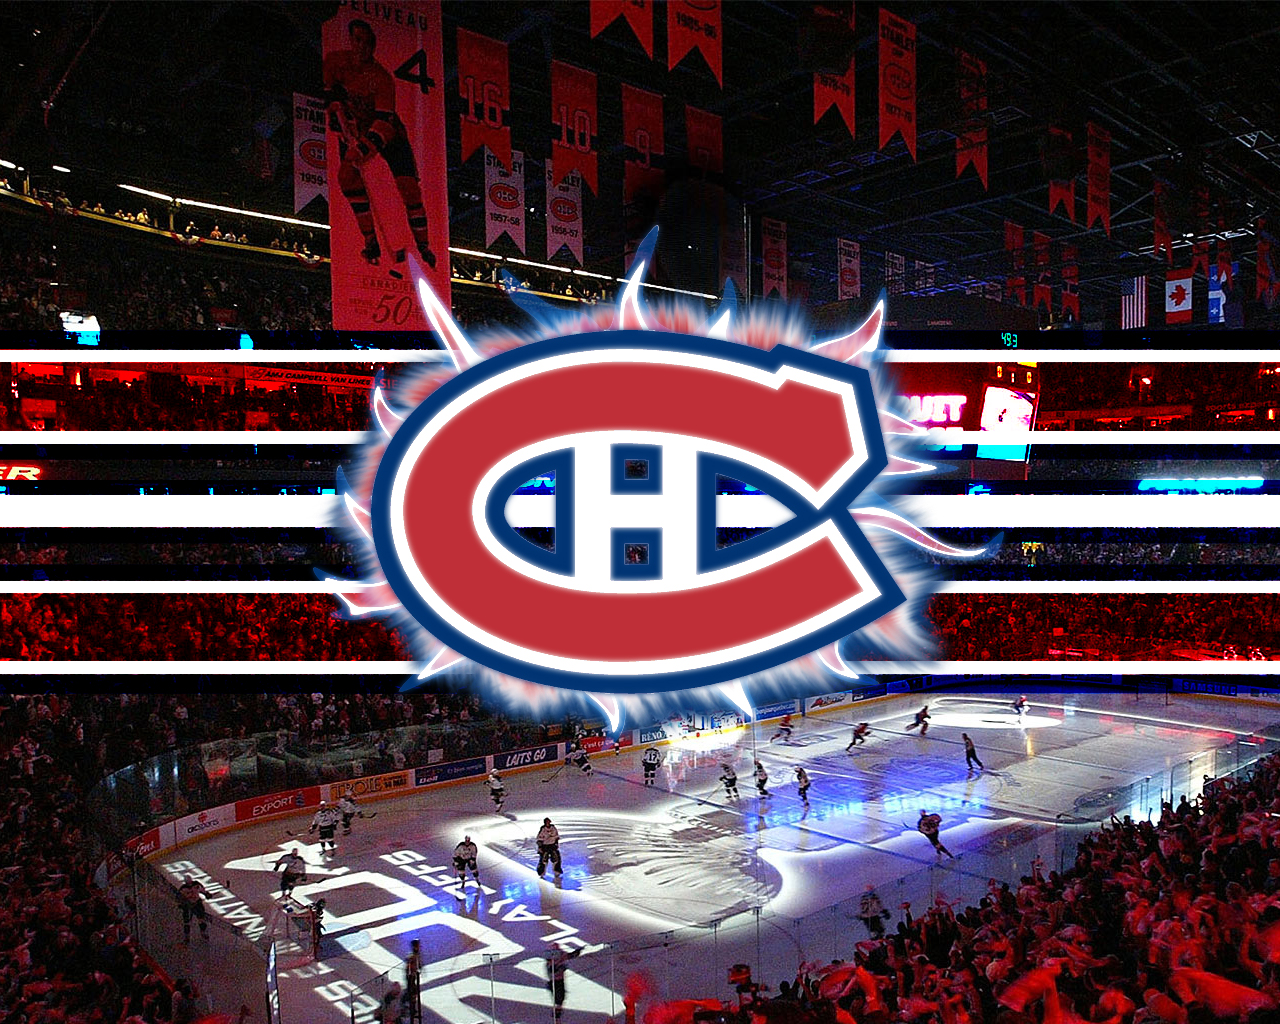 And here even more information about Montreal Canadiens 1280x1024